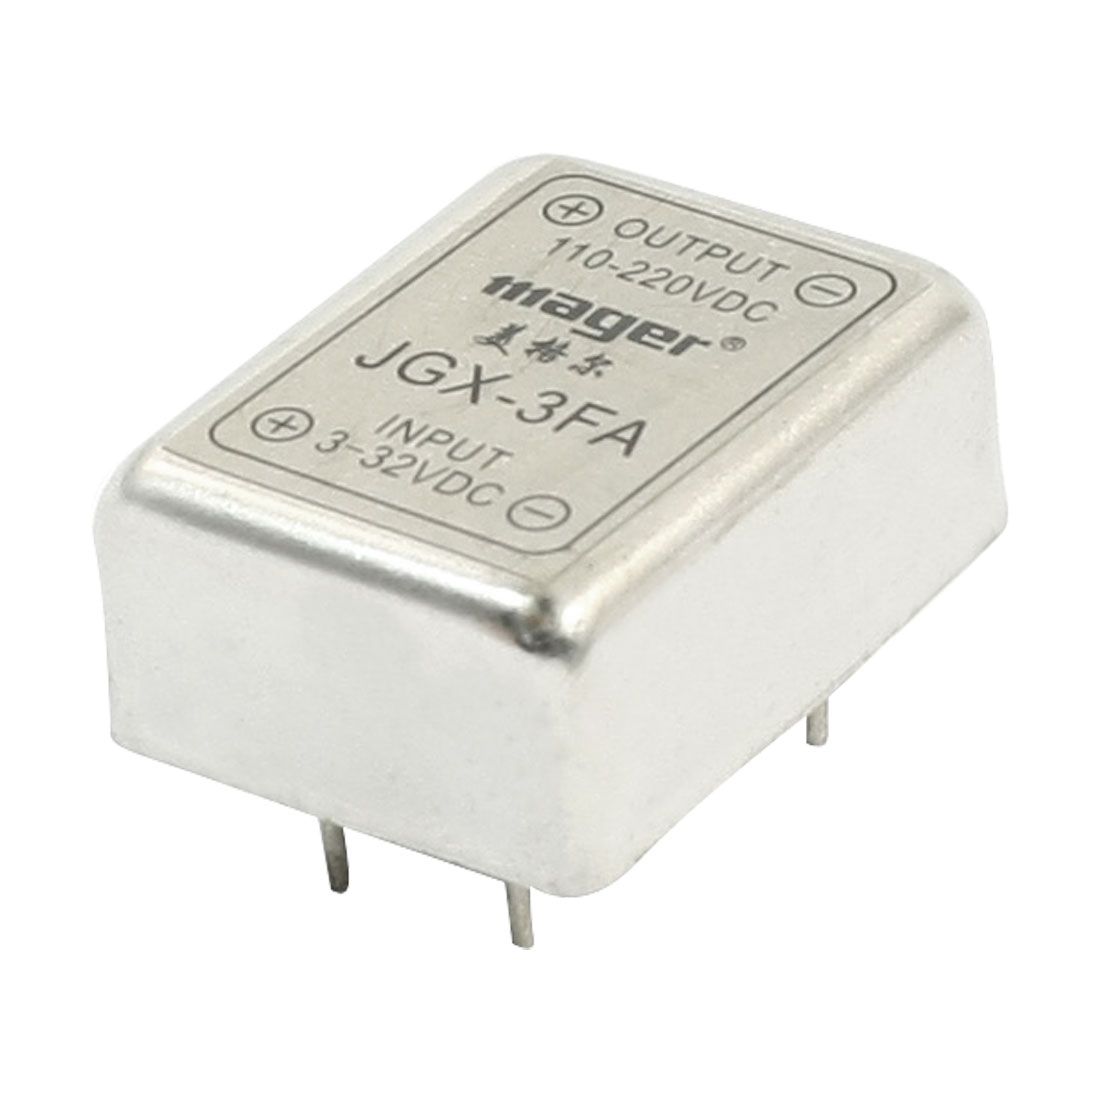 JGX-3FA DC 3-32V to 110-220V PCB Through Hole Mount Solid State Relay